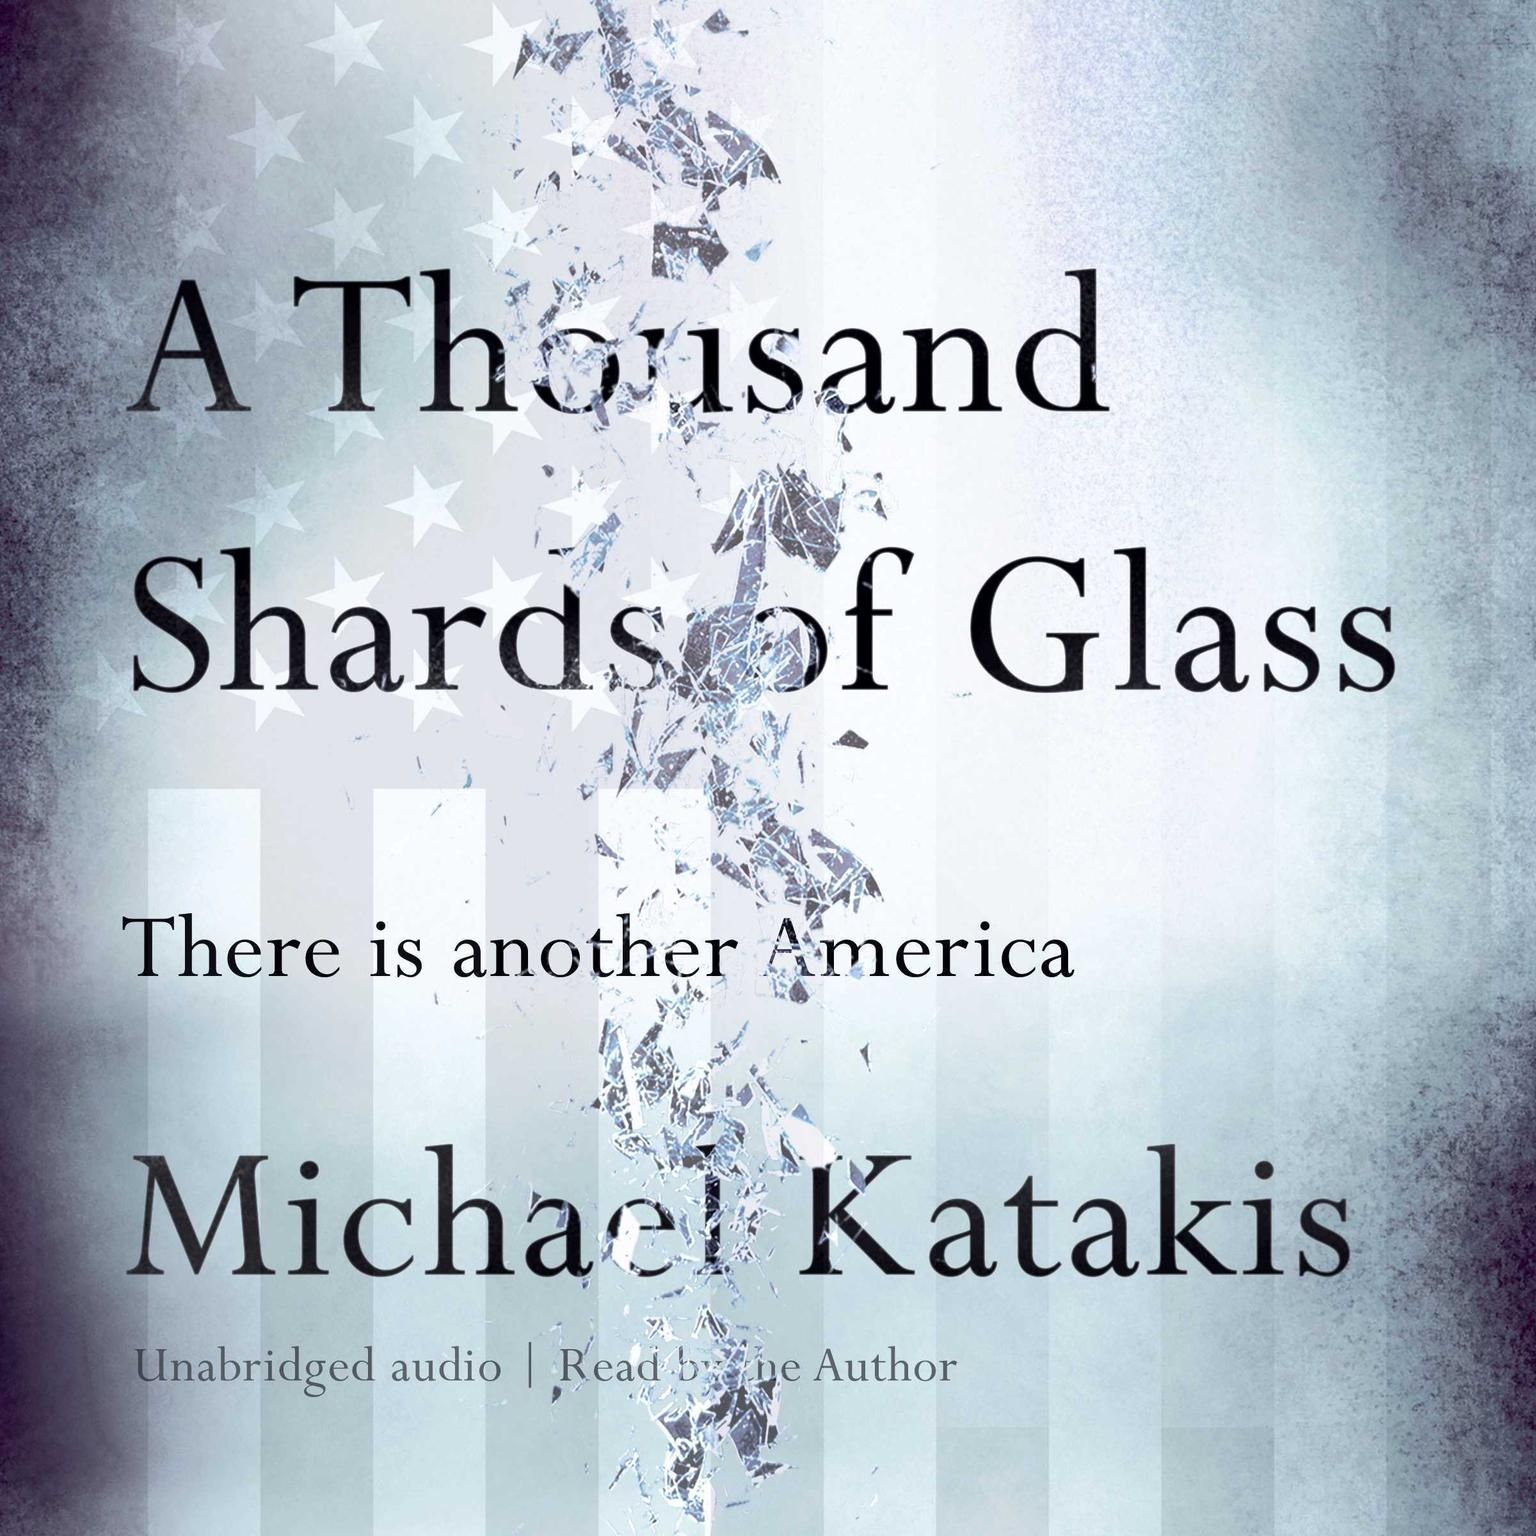 Printable A Thousand Shards of Glass Audiobook Cover Art